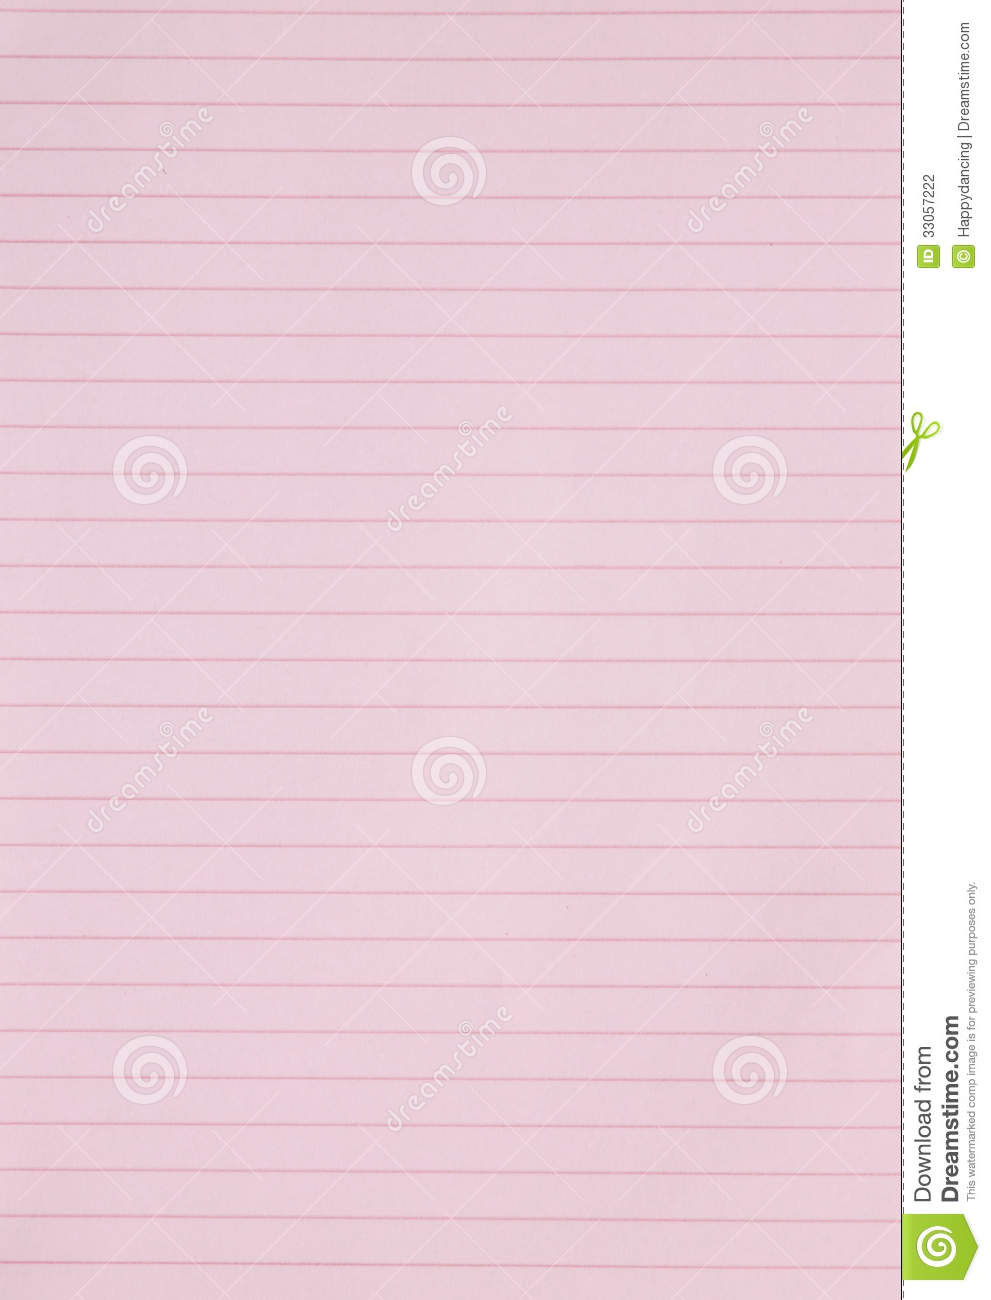 printable blank lined paper